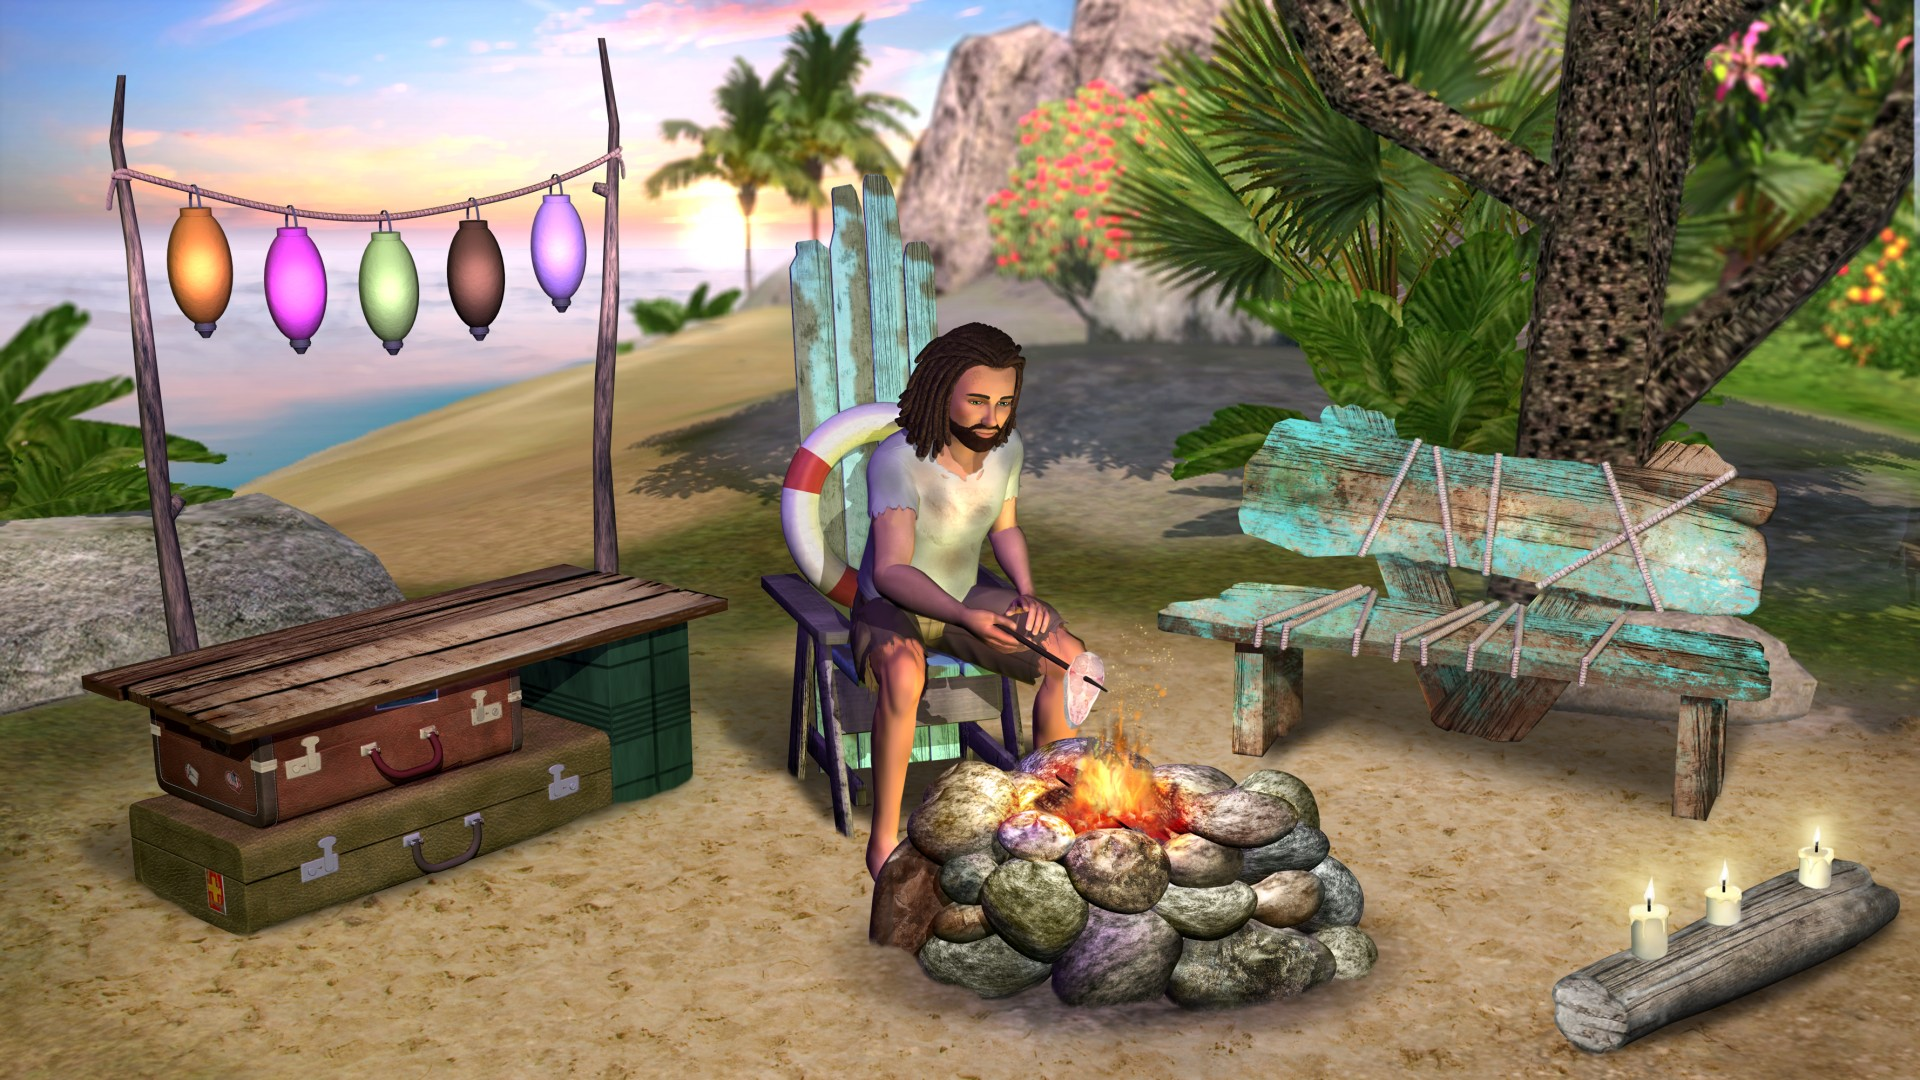 The Sims 3: Island Paradise screenshot